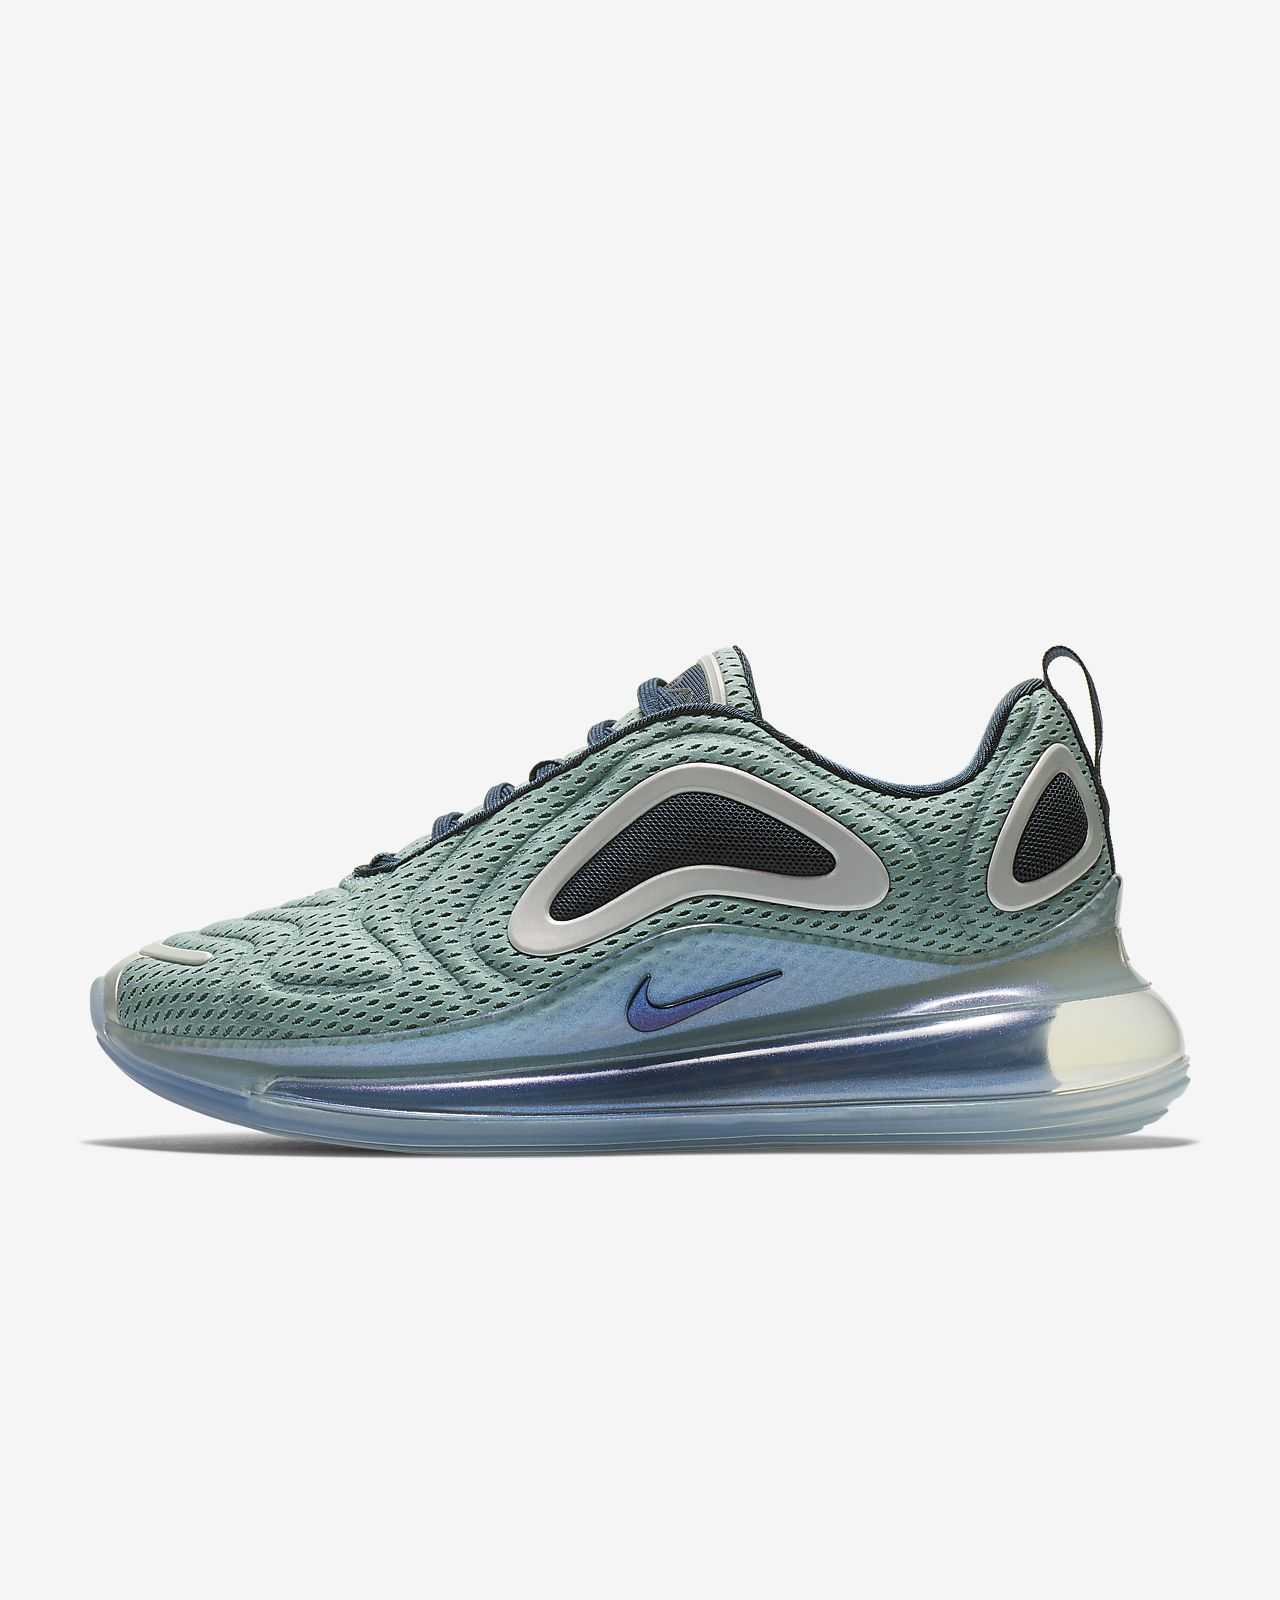 27b44ab5f26 Nike Air Max 720 Women s Shoe. Nike.com